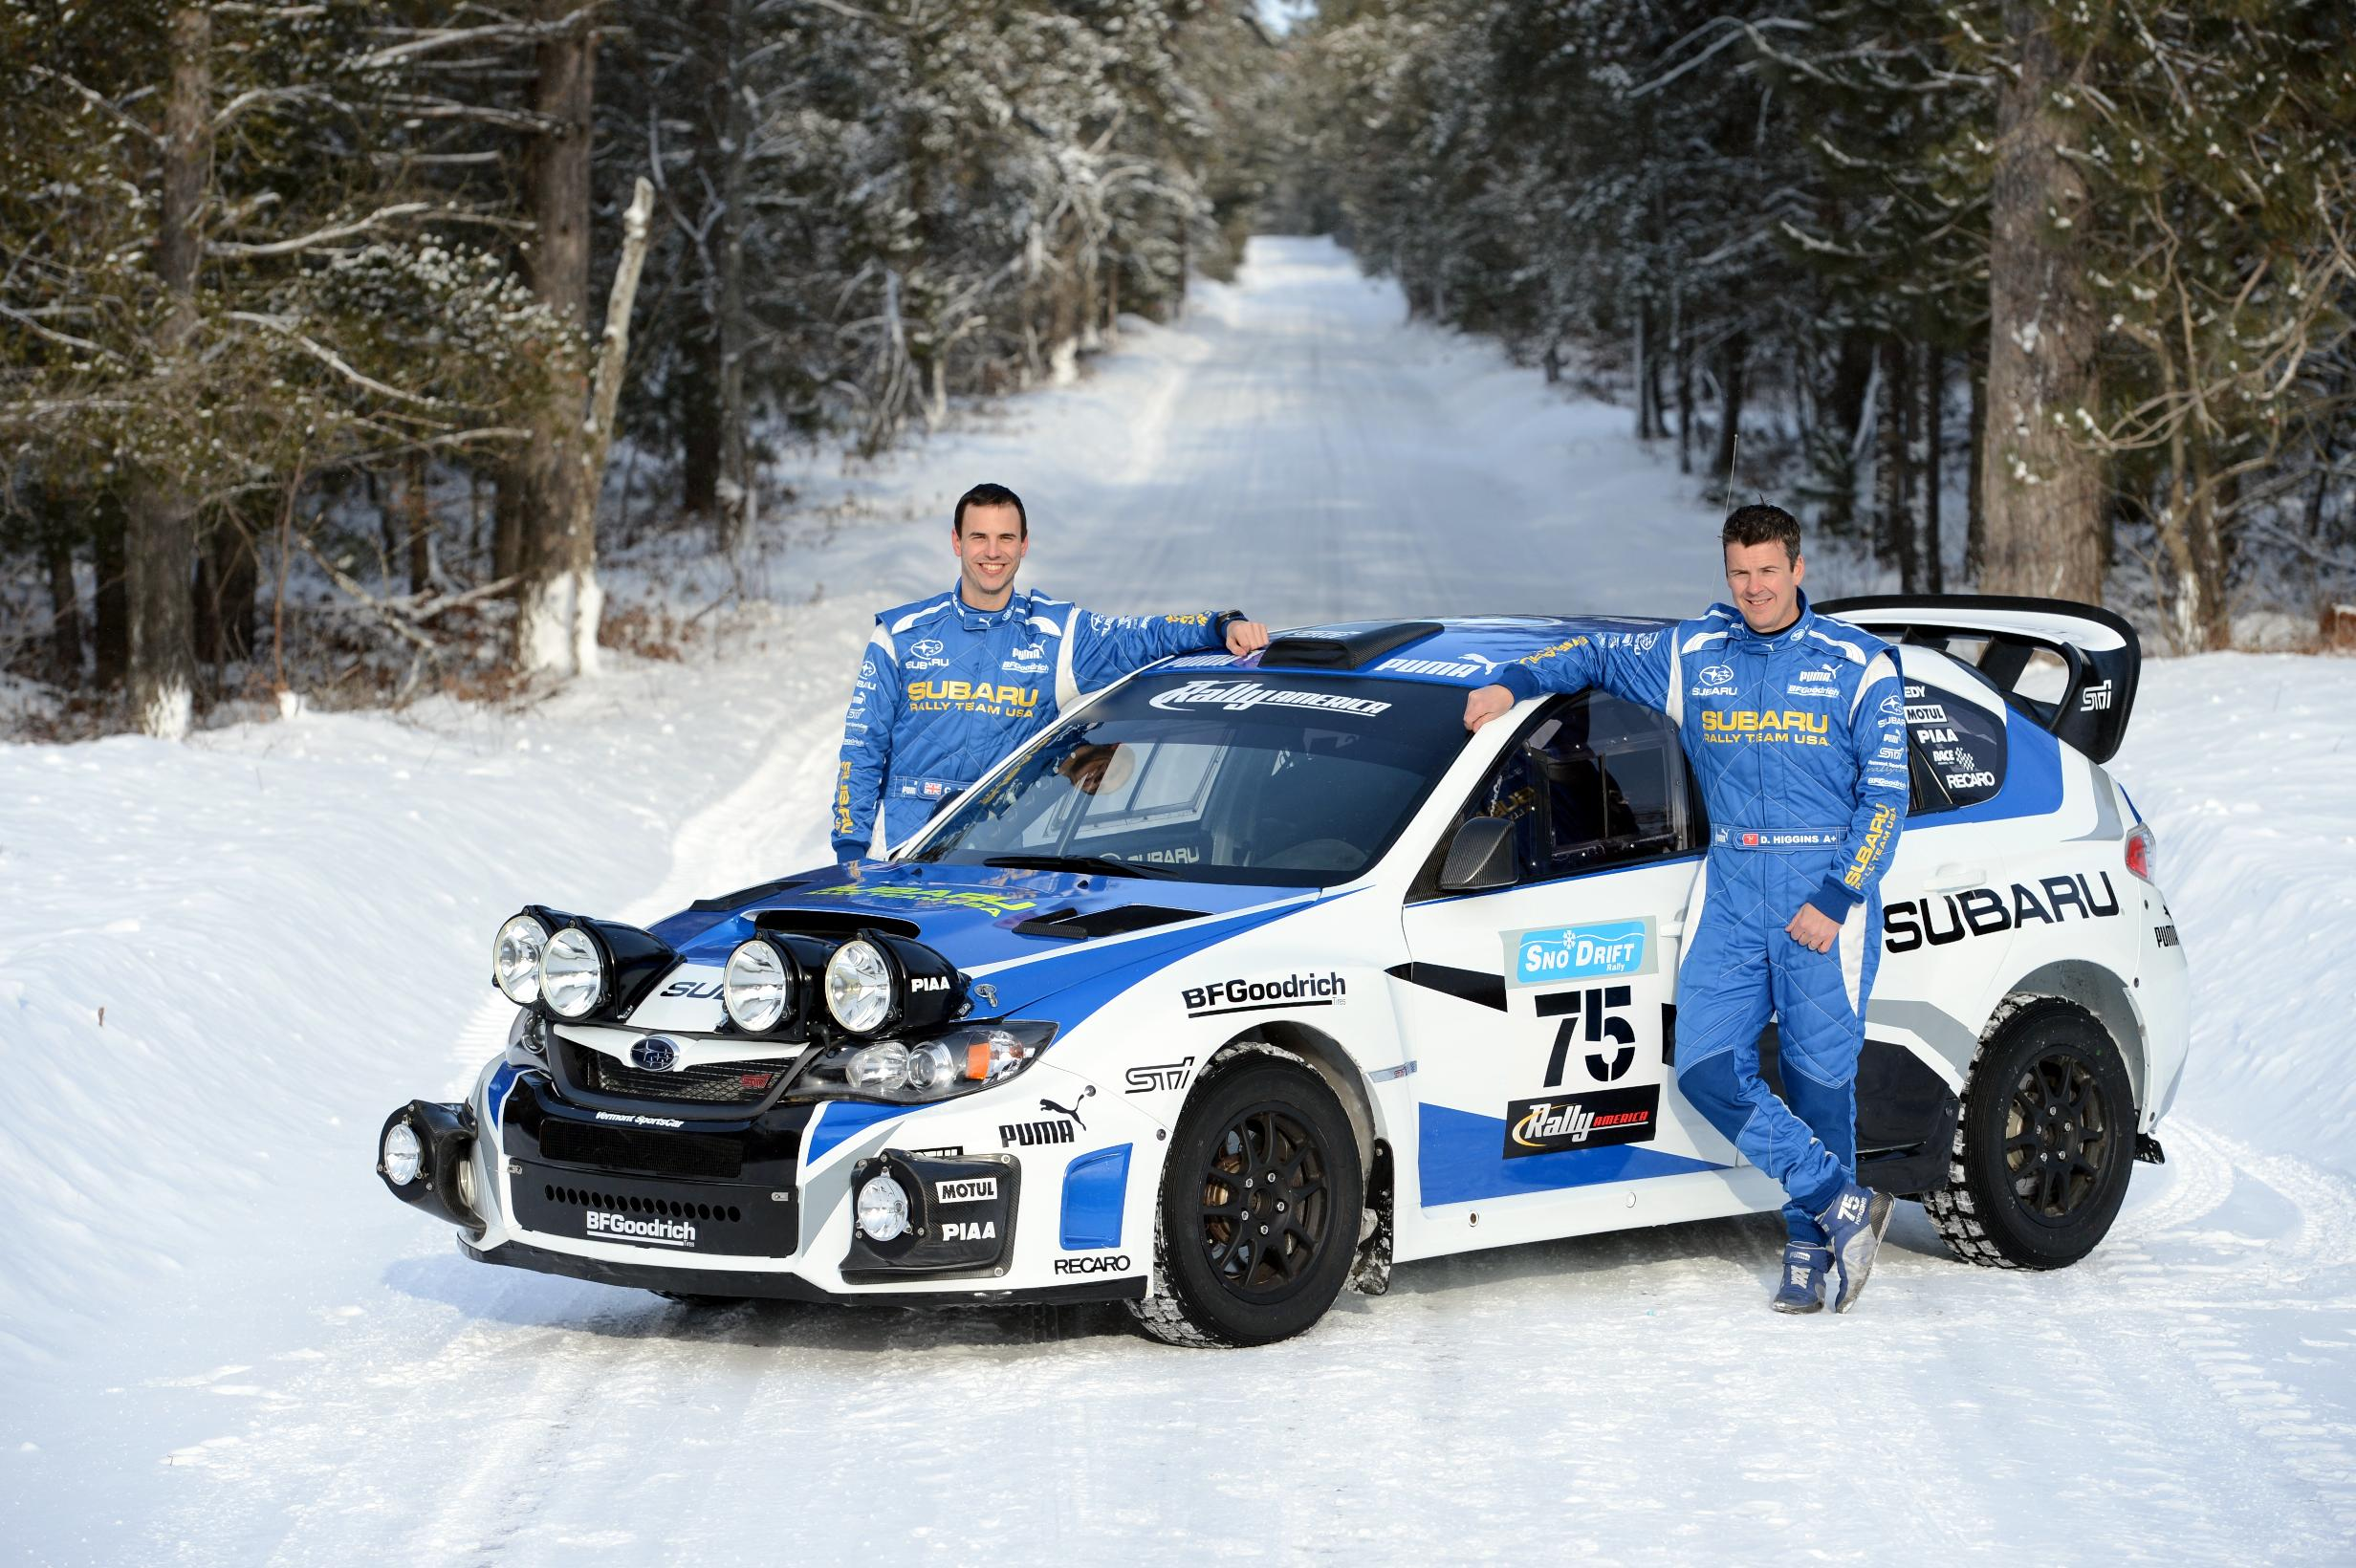 subaru scion gear up for 2013 rally america competition. Black Bedroom Furniture Sets. Home Design Ideas